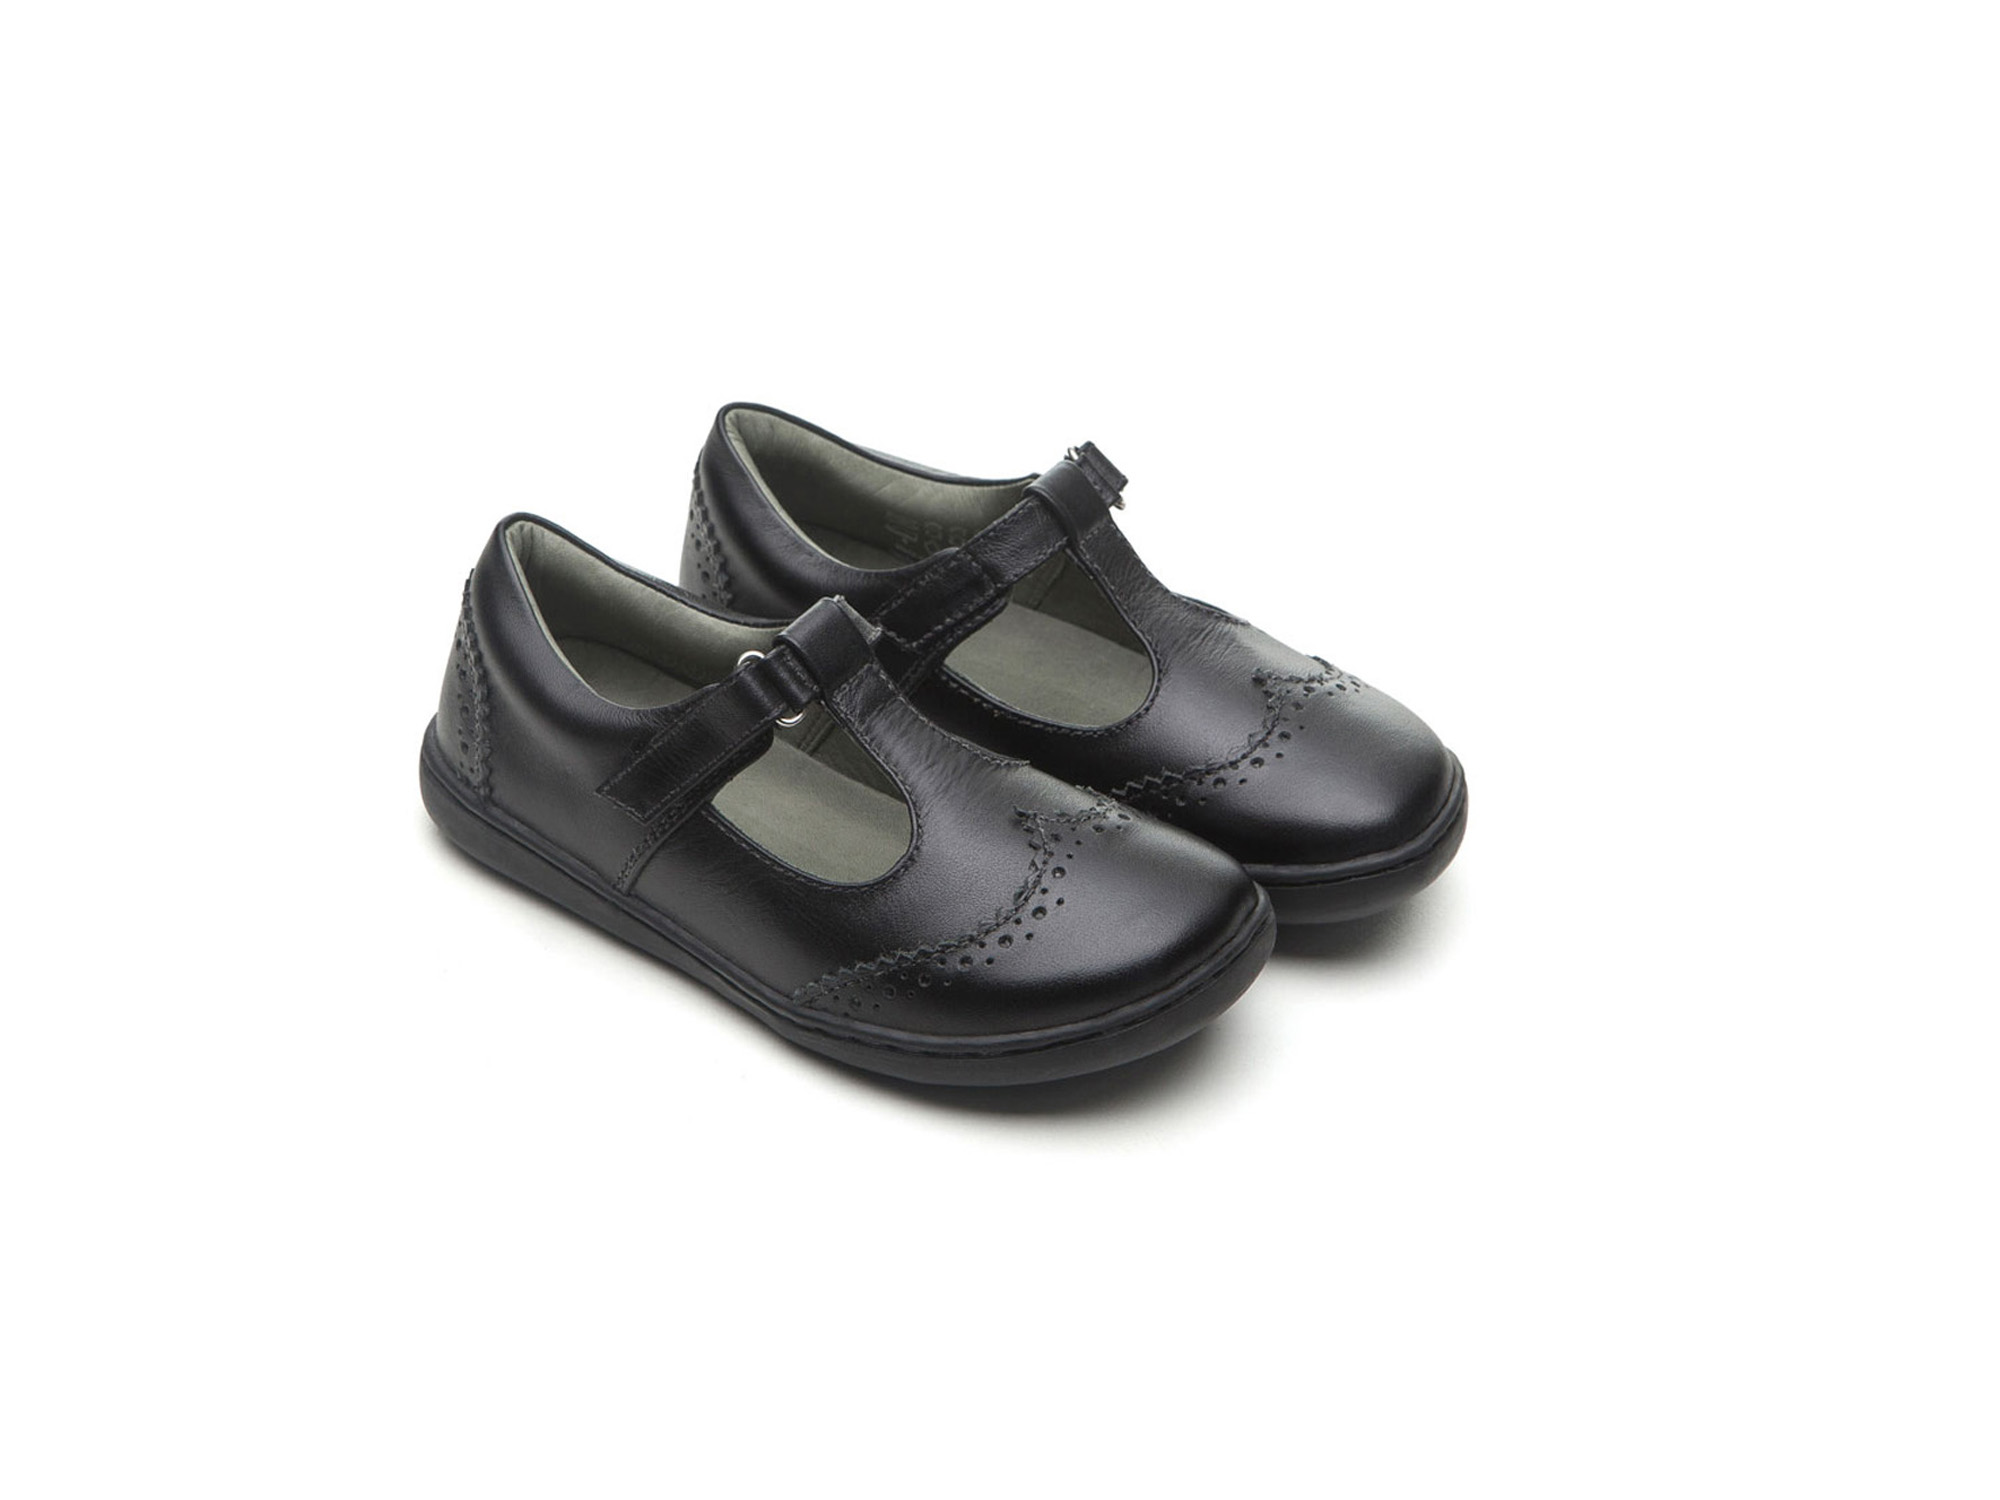 Boneca Little Grace Black Toscana  Toddler 2 à 4 anos - 0